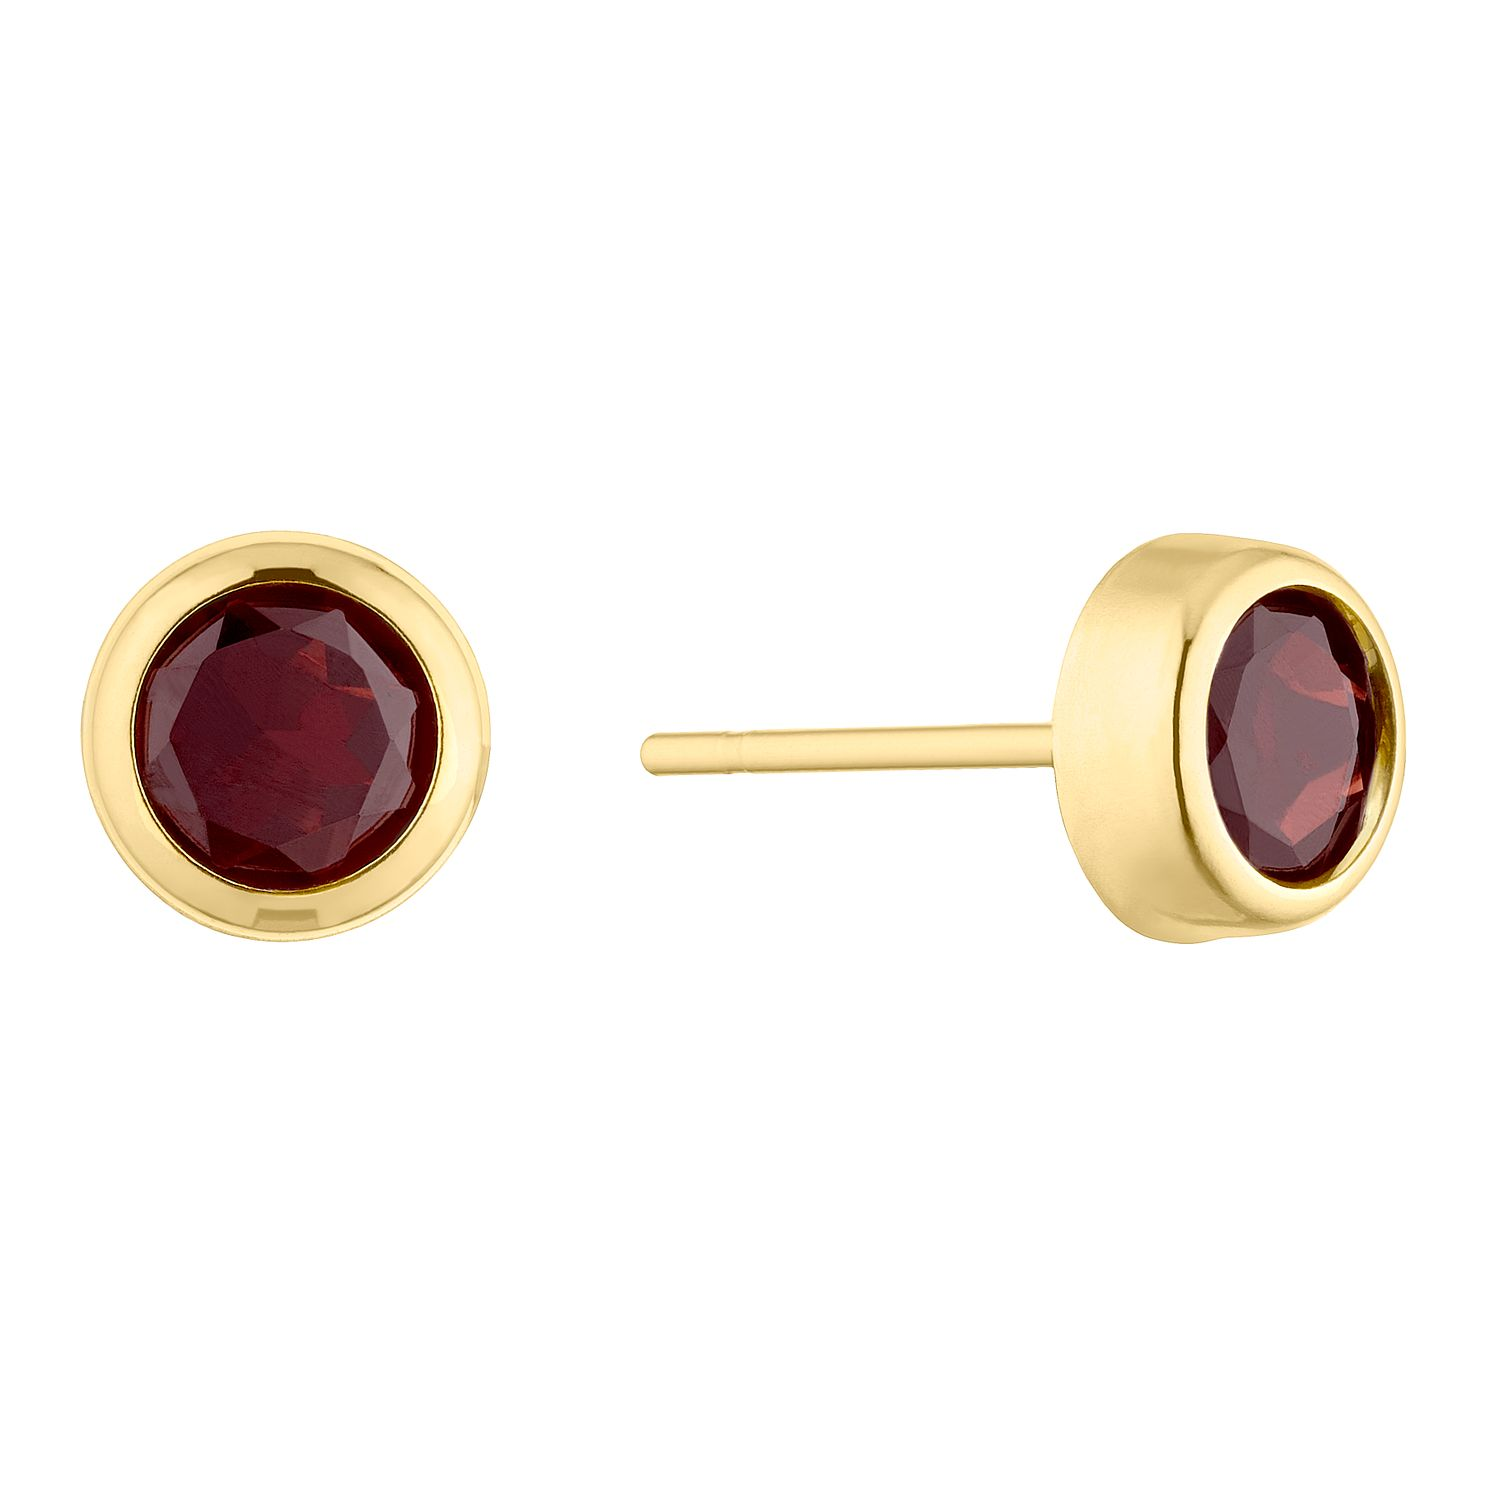 9ct Yellow Gold Rubover Garnet 5mm Stud Earrings - Product number 5087120